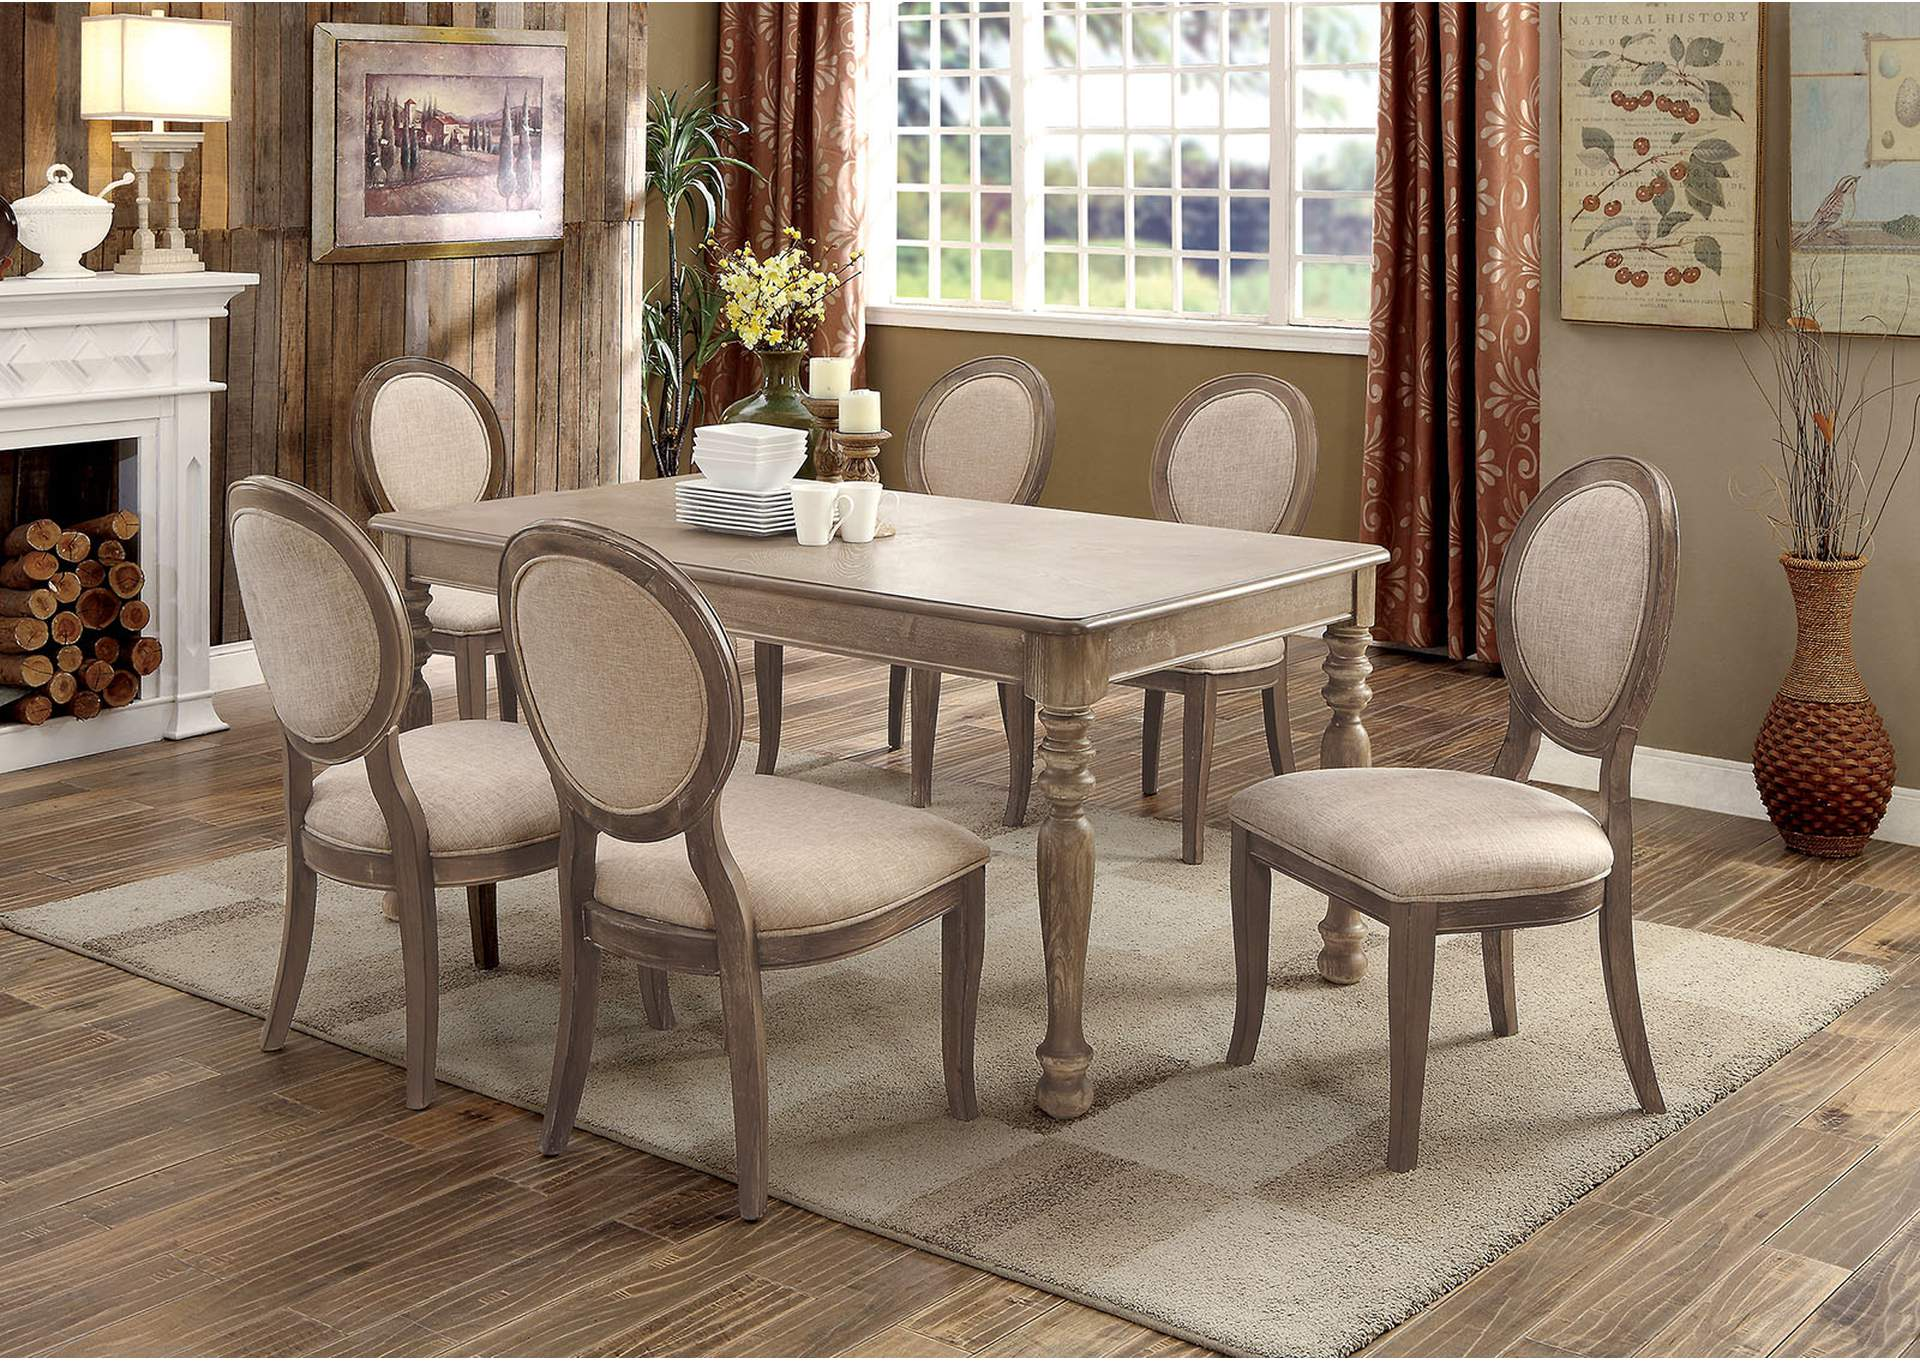 Siobhan Rustic Oak Rectangular Dining Table,Furniture of America